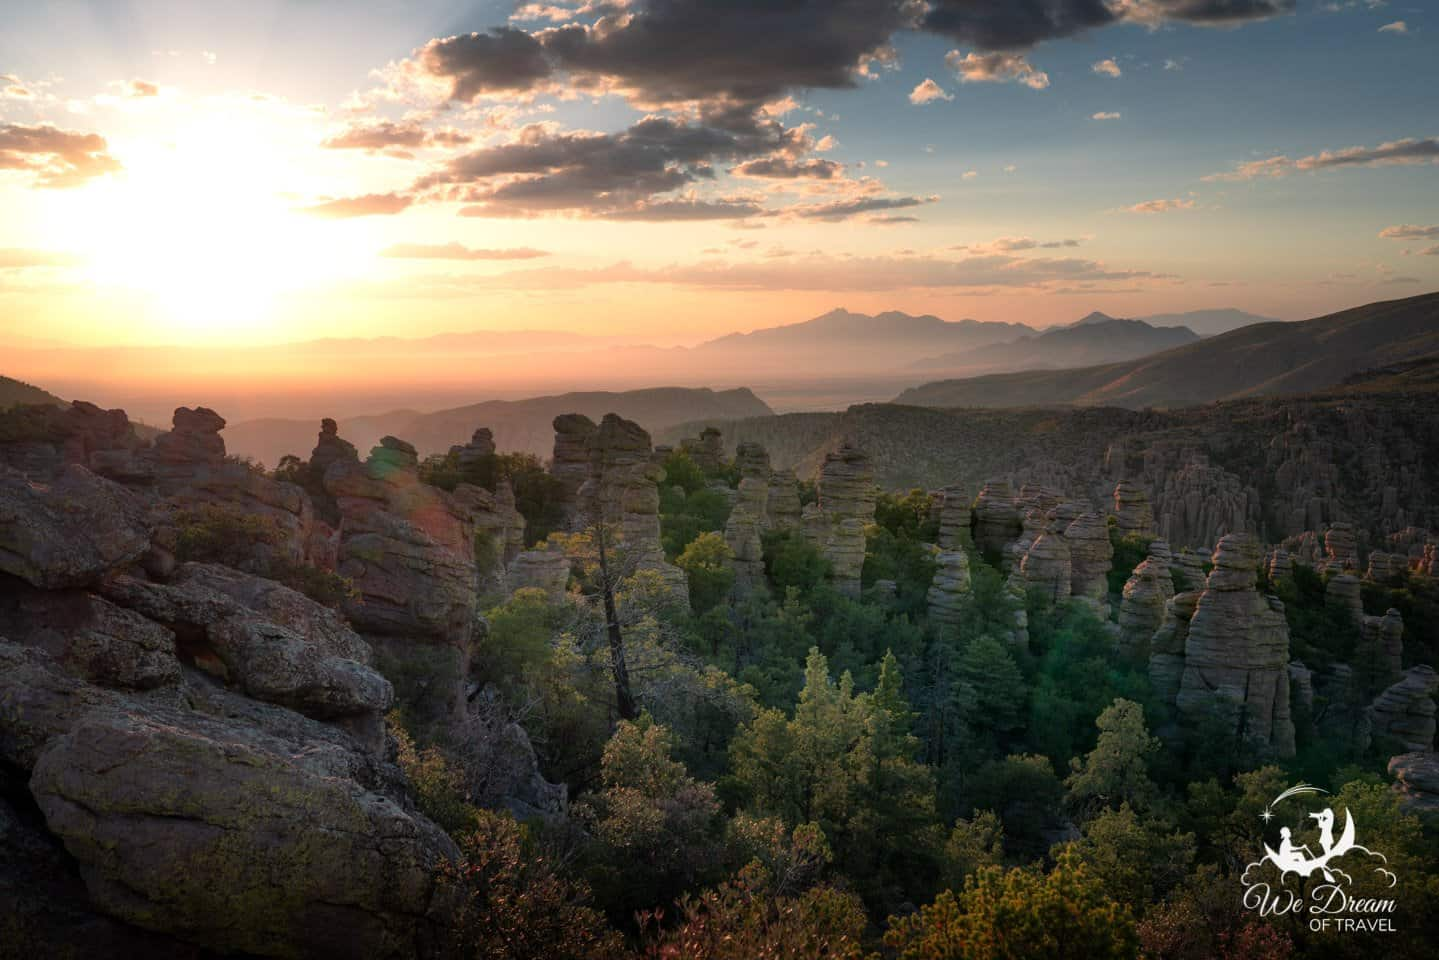 Sunset from the Heart of Rocks Loop in Chiricahua NM.